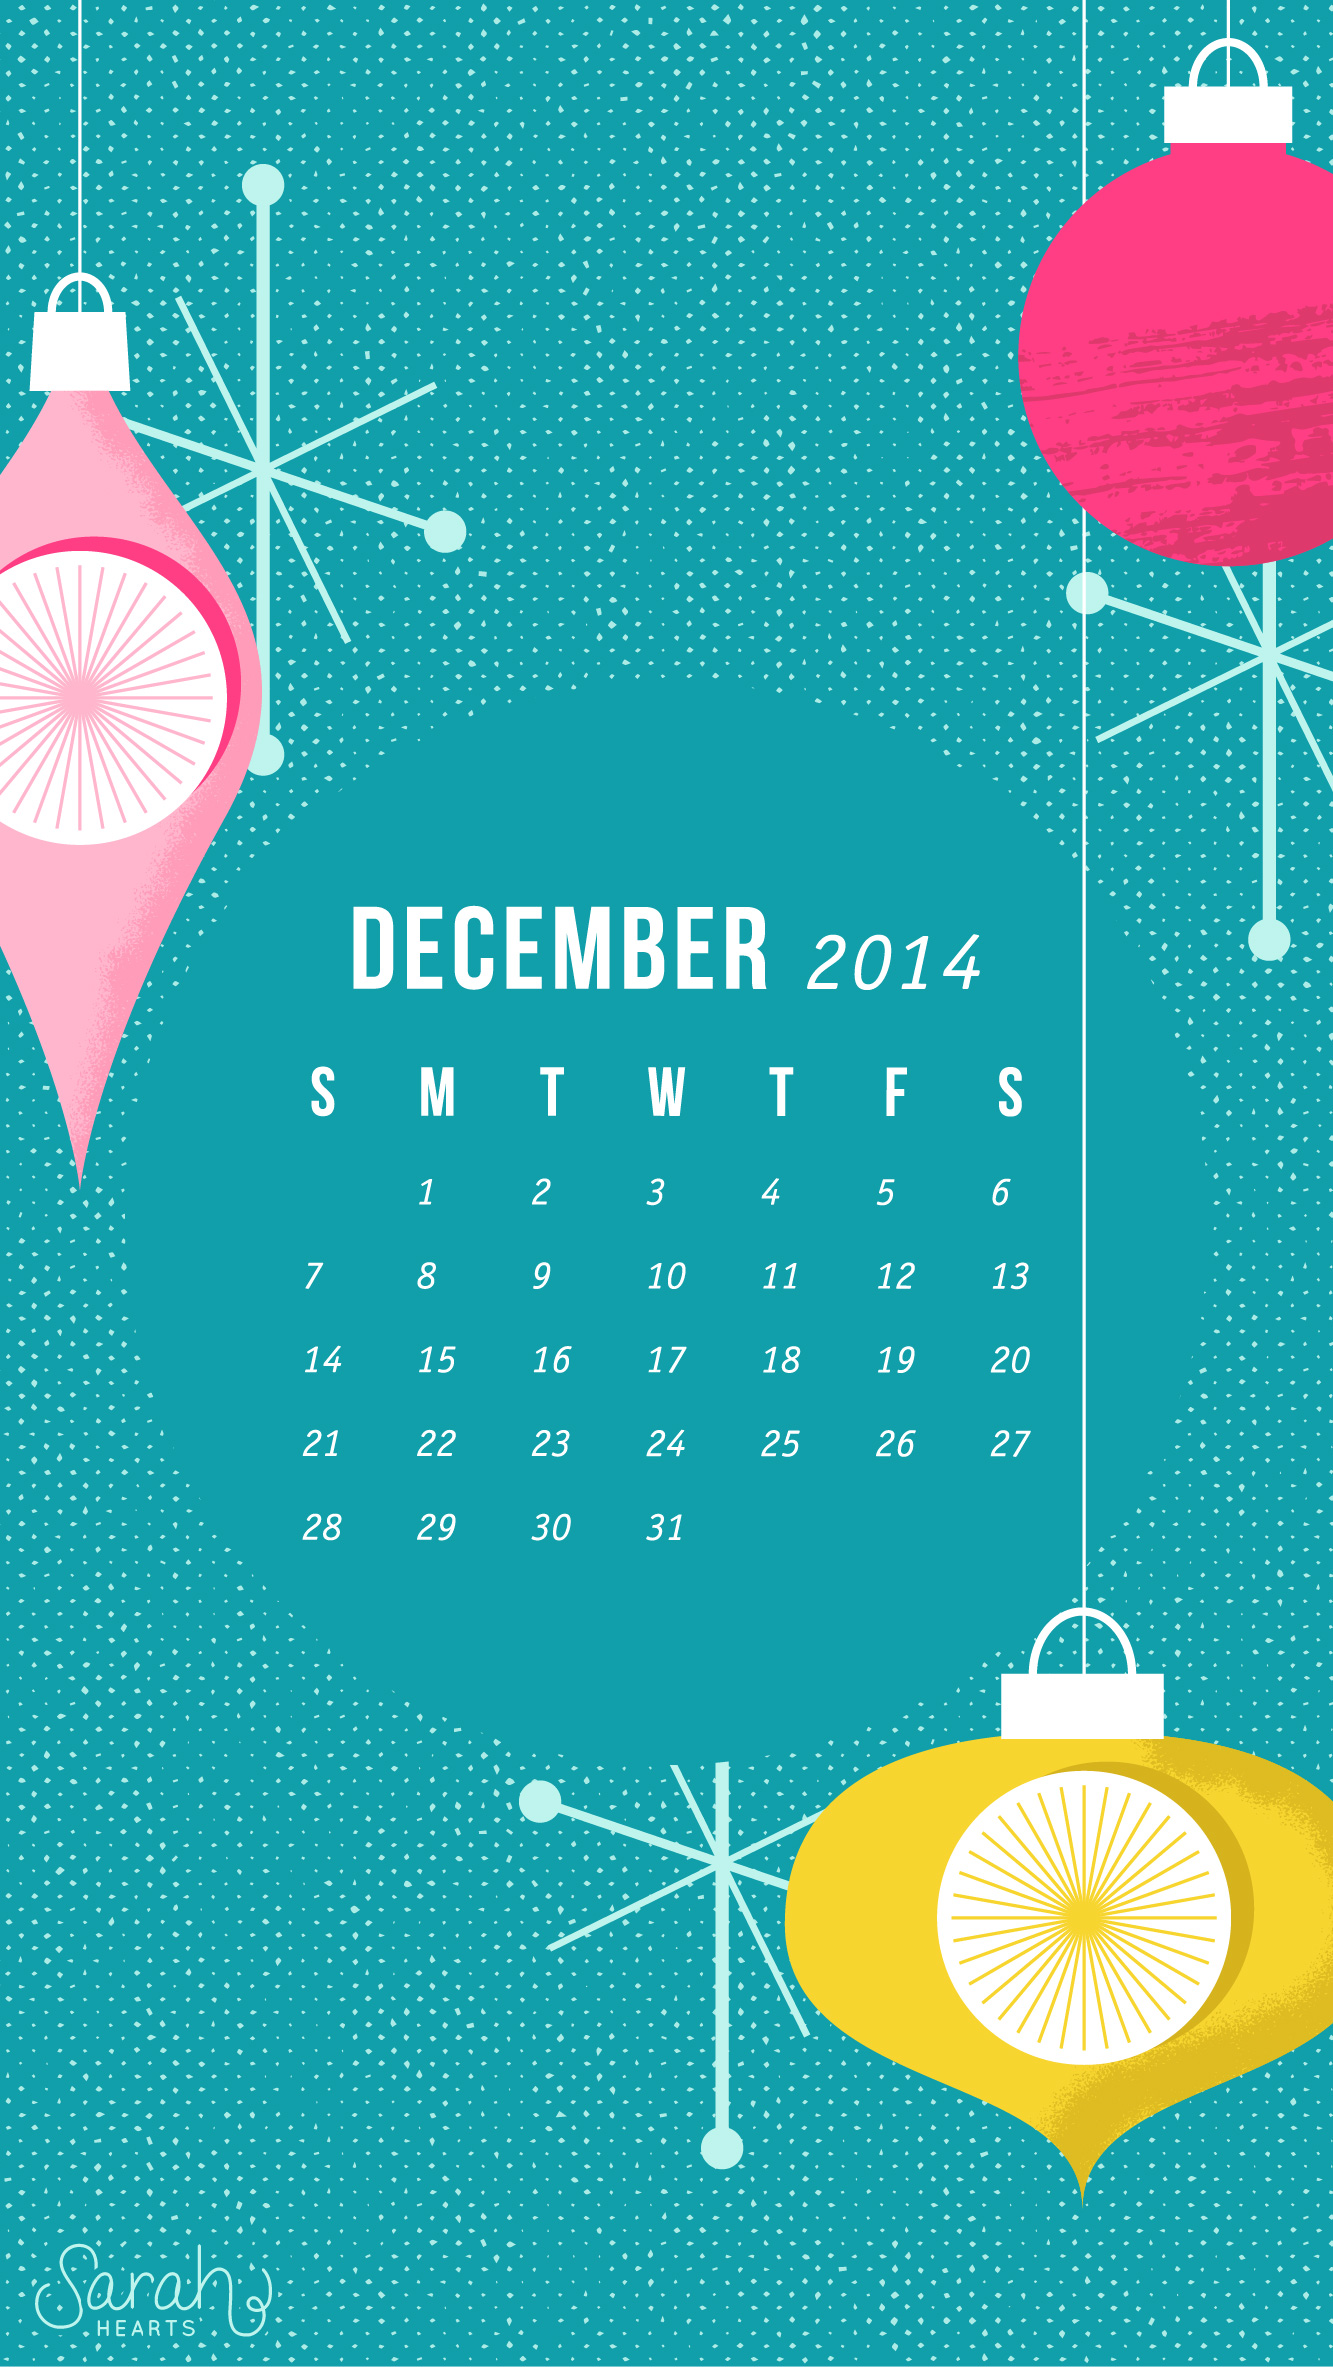 dec_2014_wallpaper_calendar_iphone